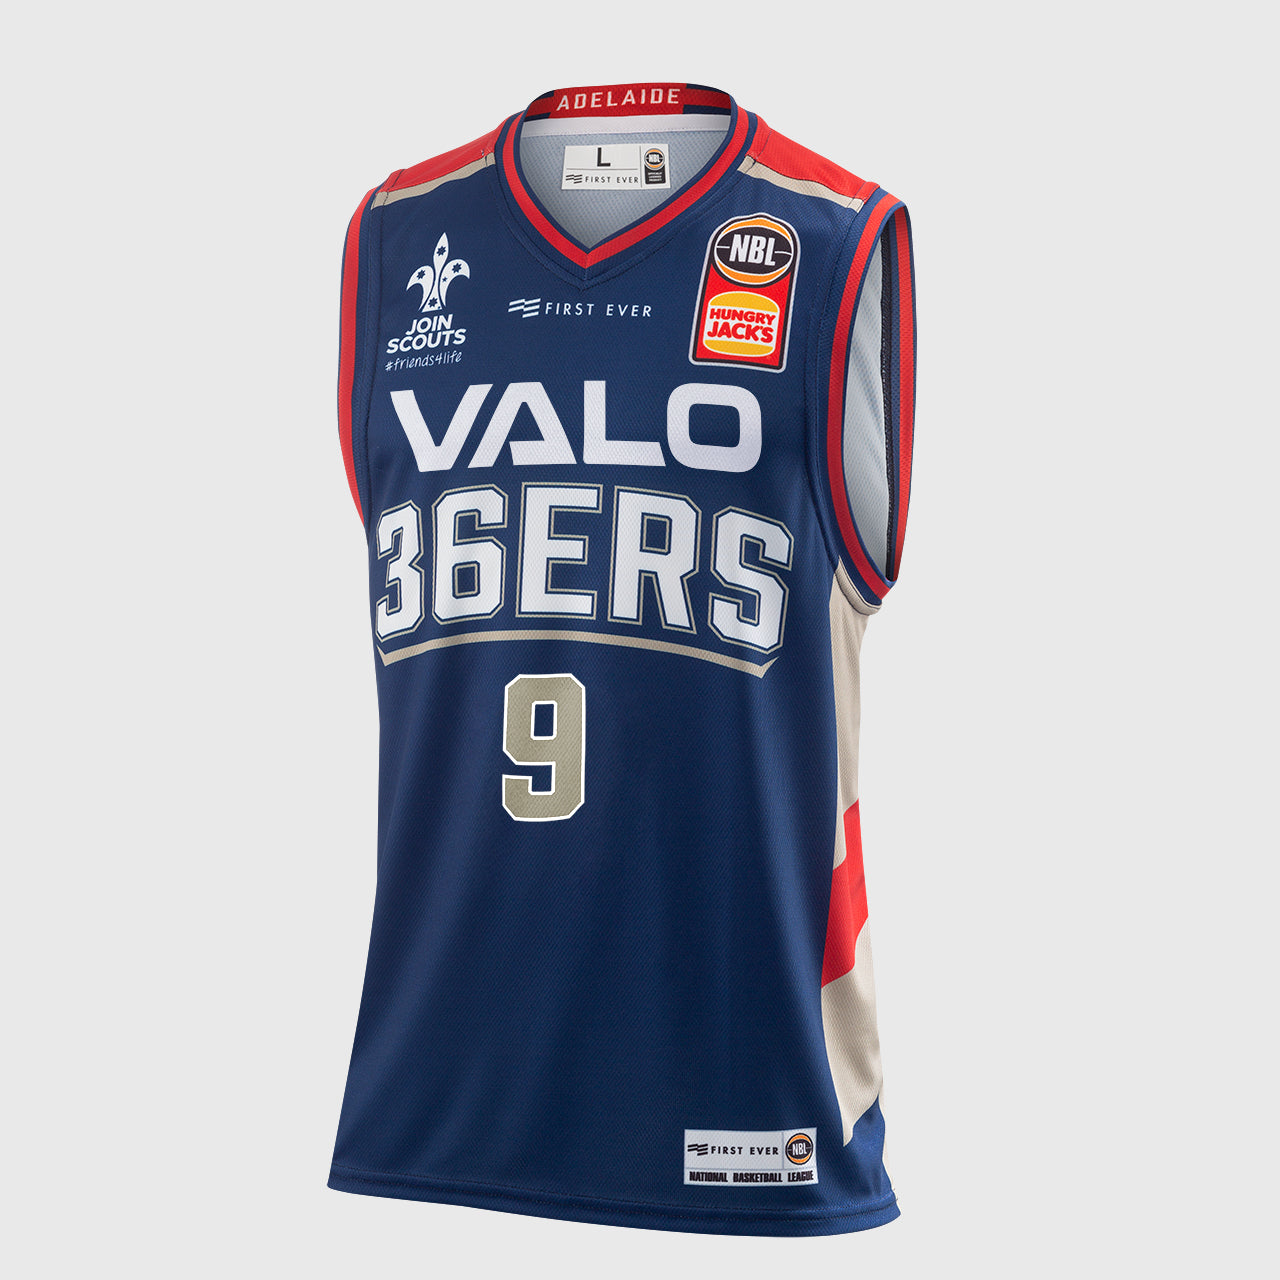 Adelaide 36ers 18/19 Authentic Jersey - Jack McVeigh